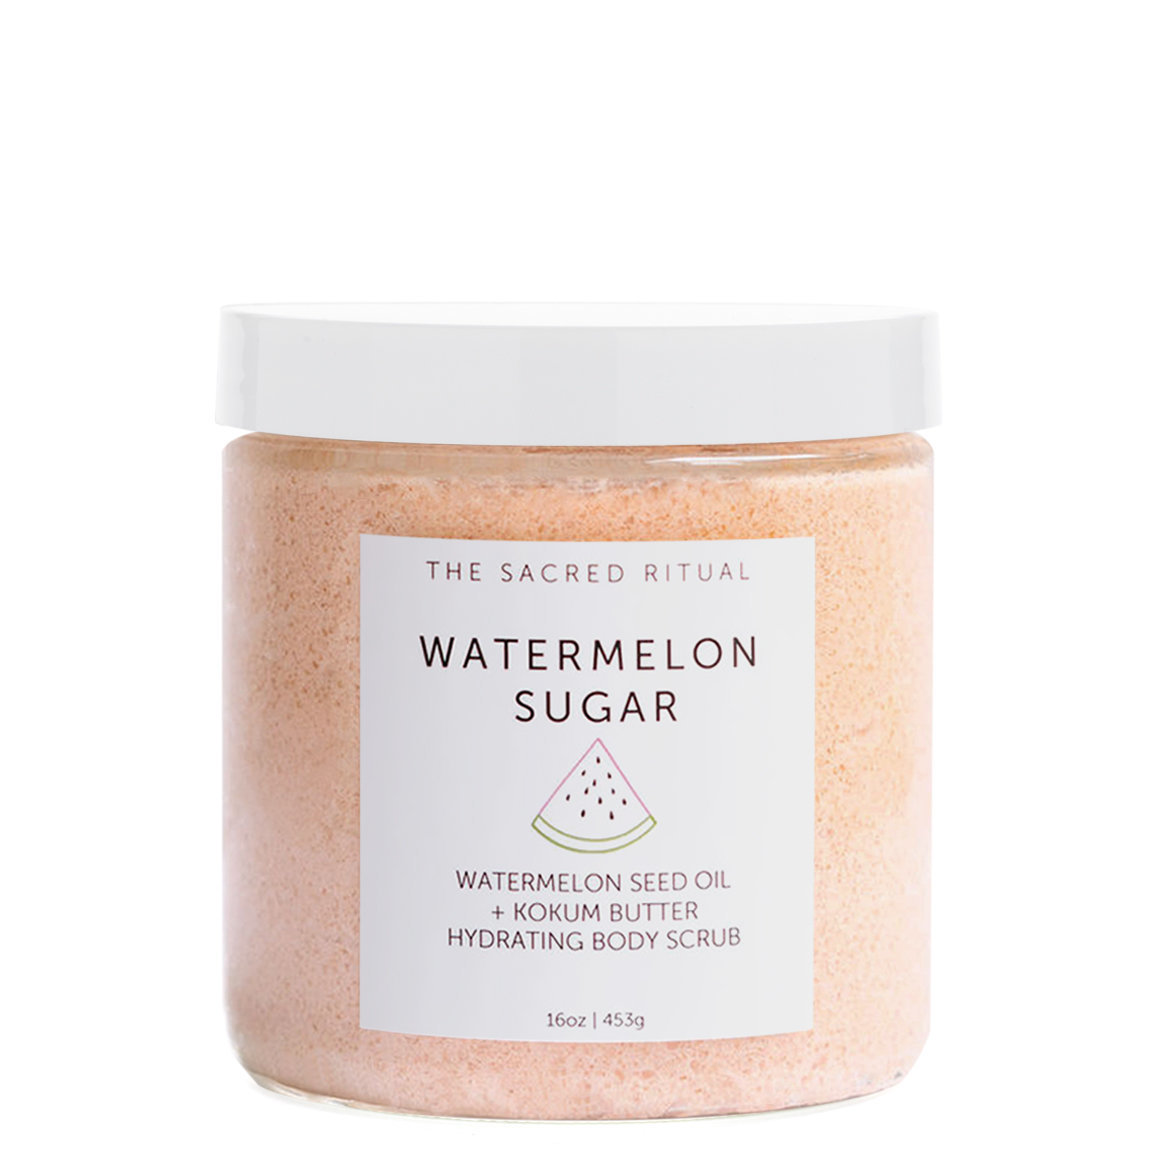 The Sacred Ritual Watermelon Sugar Hydrating Body Scrub alternative view 1 - product swatch.